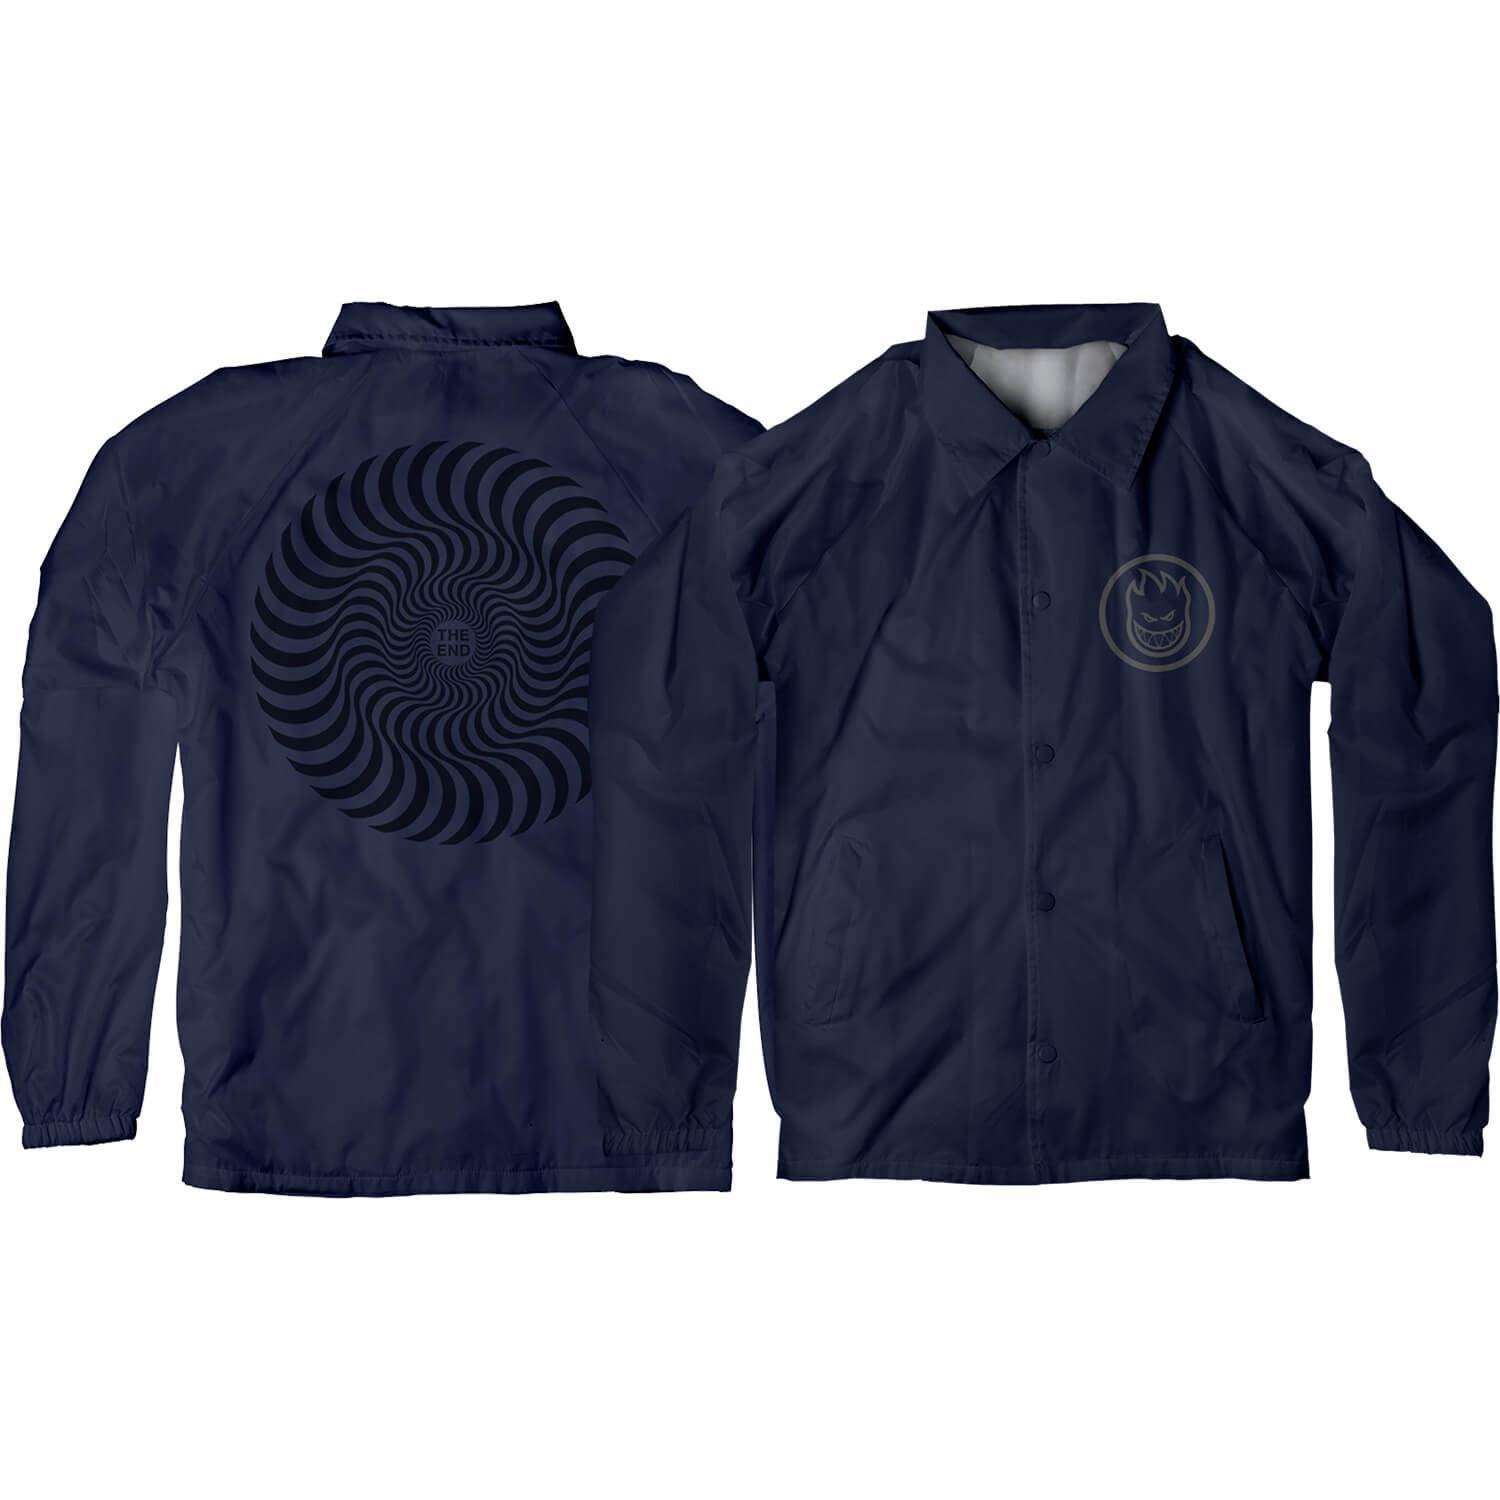 Small Grey Mens Jacket Spitfire Wheels Classic Swirl Navy